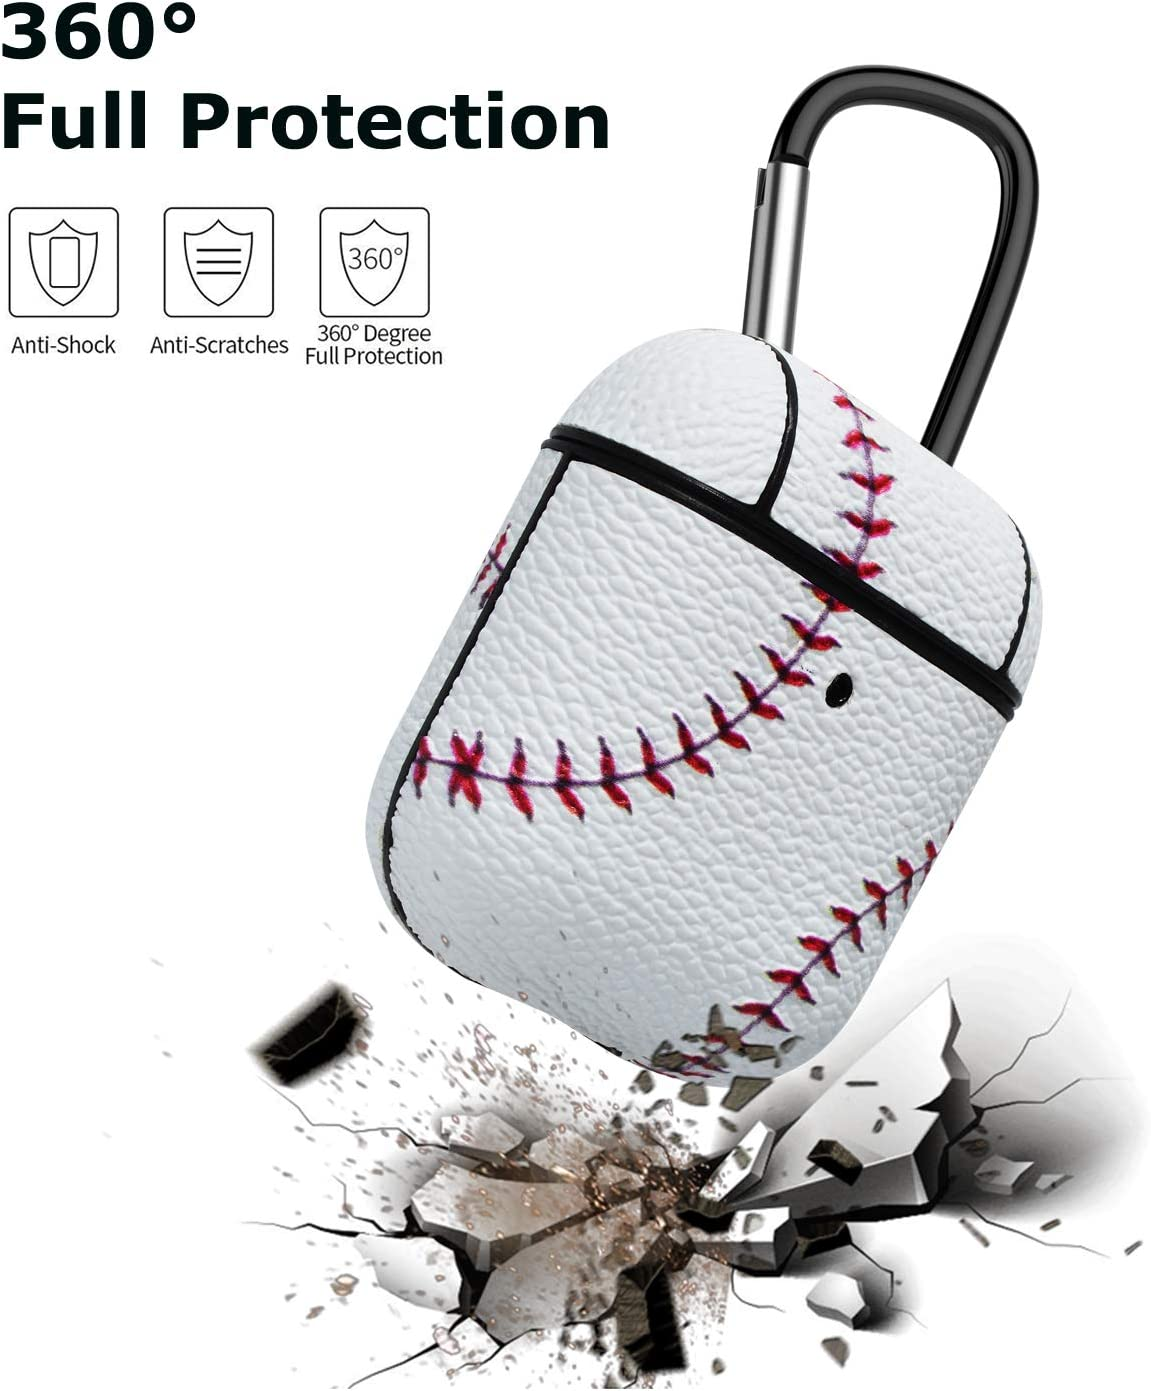 AirPods Case Takfox Airpod Case Cover Protective Shockproof Scratch Resistance Premium Leather Headphone Case with Carabiner//Keychain Skin for Apple Airpods 2 /& AirPods 1 Charging Case-Baseball